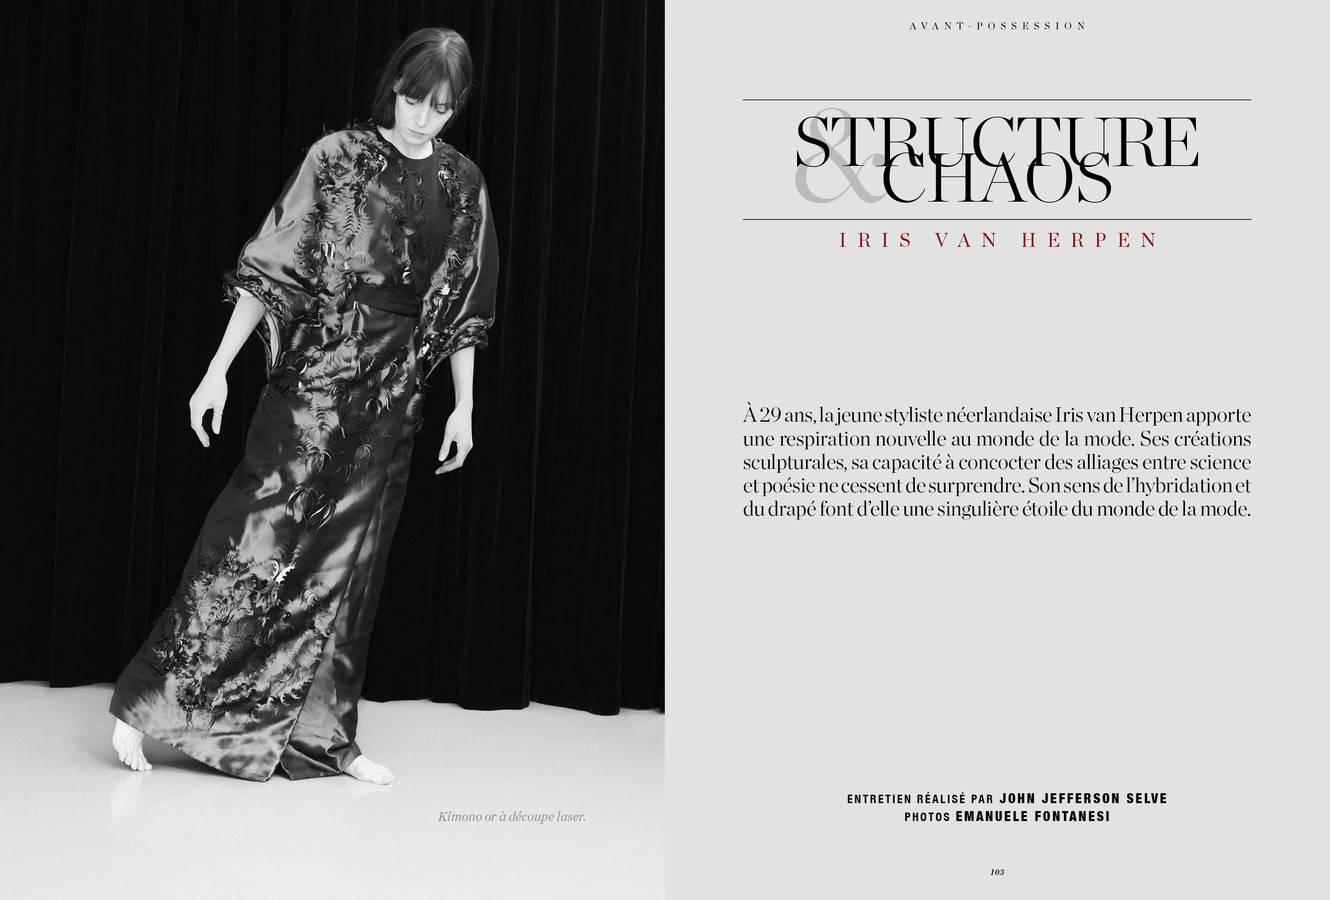 Mode : interview d'Iris van Herpen : Structures & chaos, photographies d'Emanuele Fontanesi